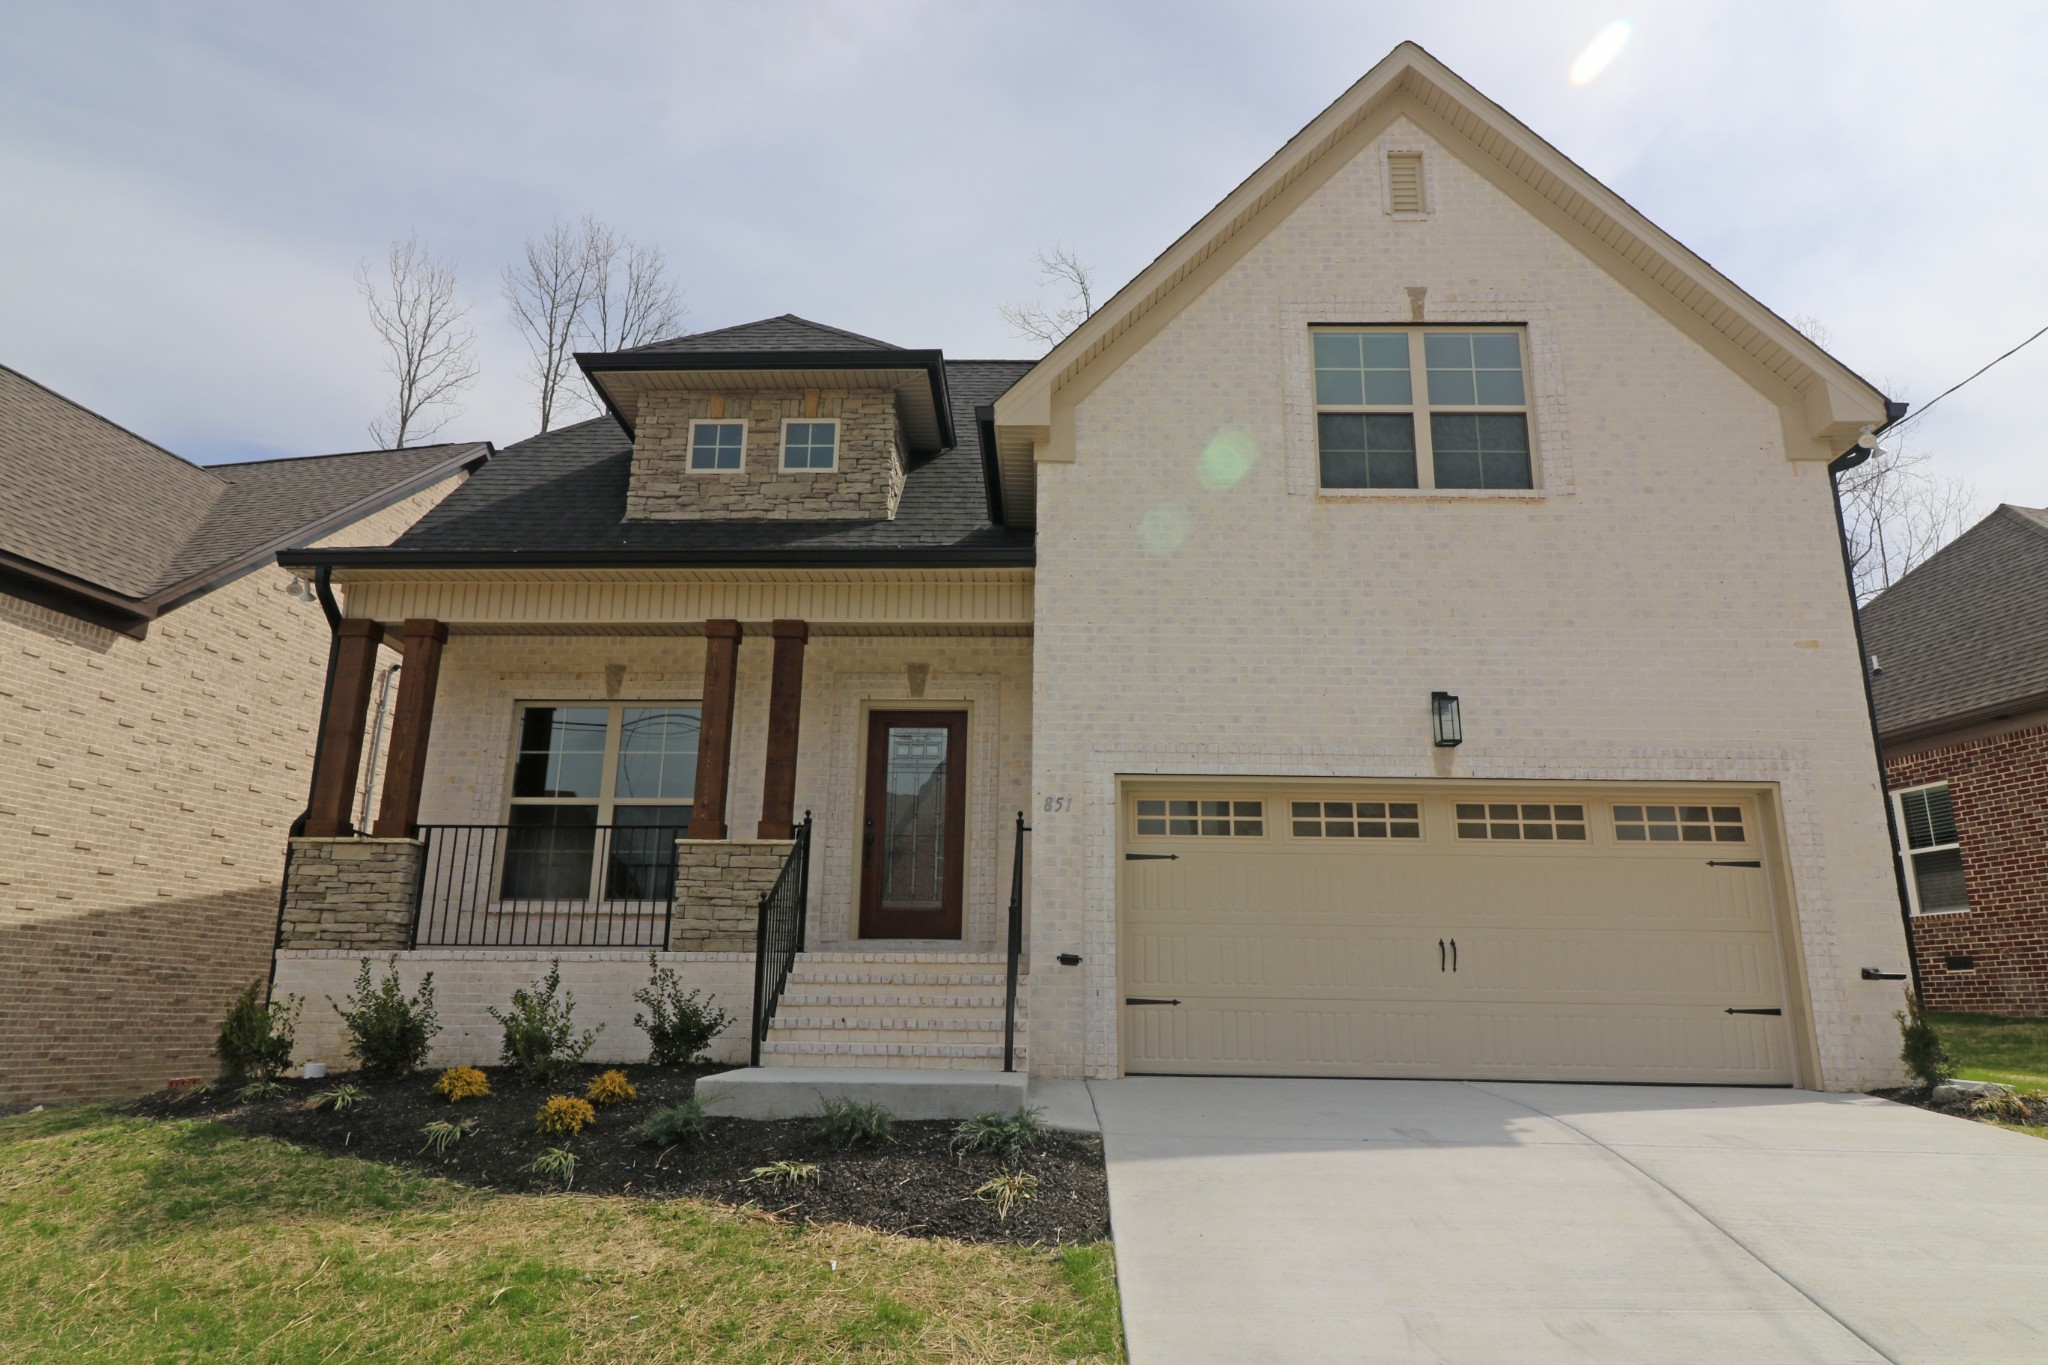 2,029 Sq.Ft. 3 Bdrms - 2.5 Baths - Owner's Suite on Main level, Hardwood flooring in greatroom, kitchen, dining room. Kitchen with stainless appliances, granite counter tops, tiled back splash.